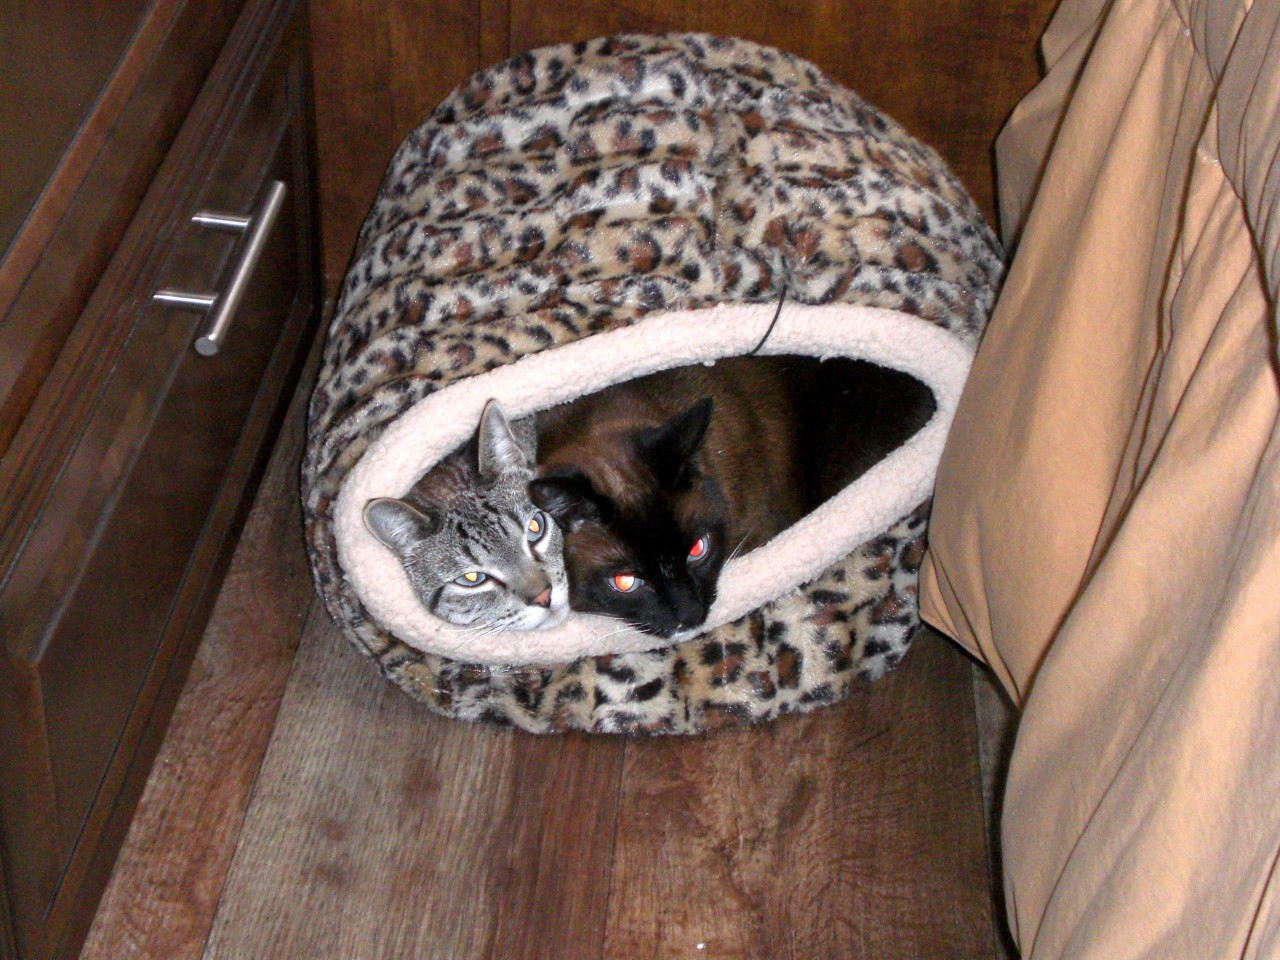 Kitties squeezed into one cat cozy